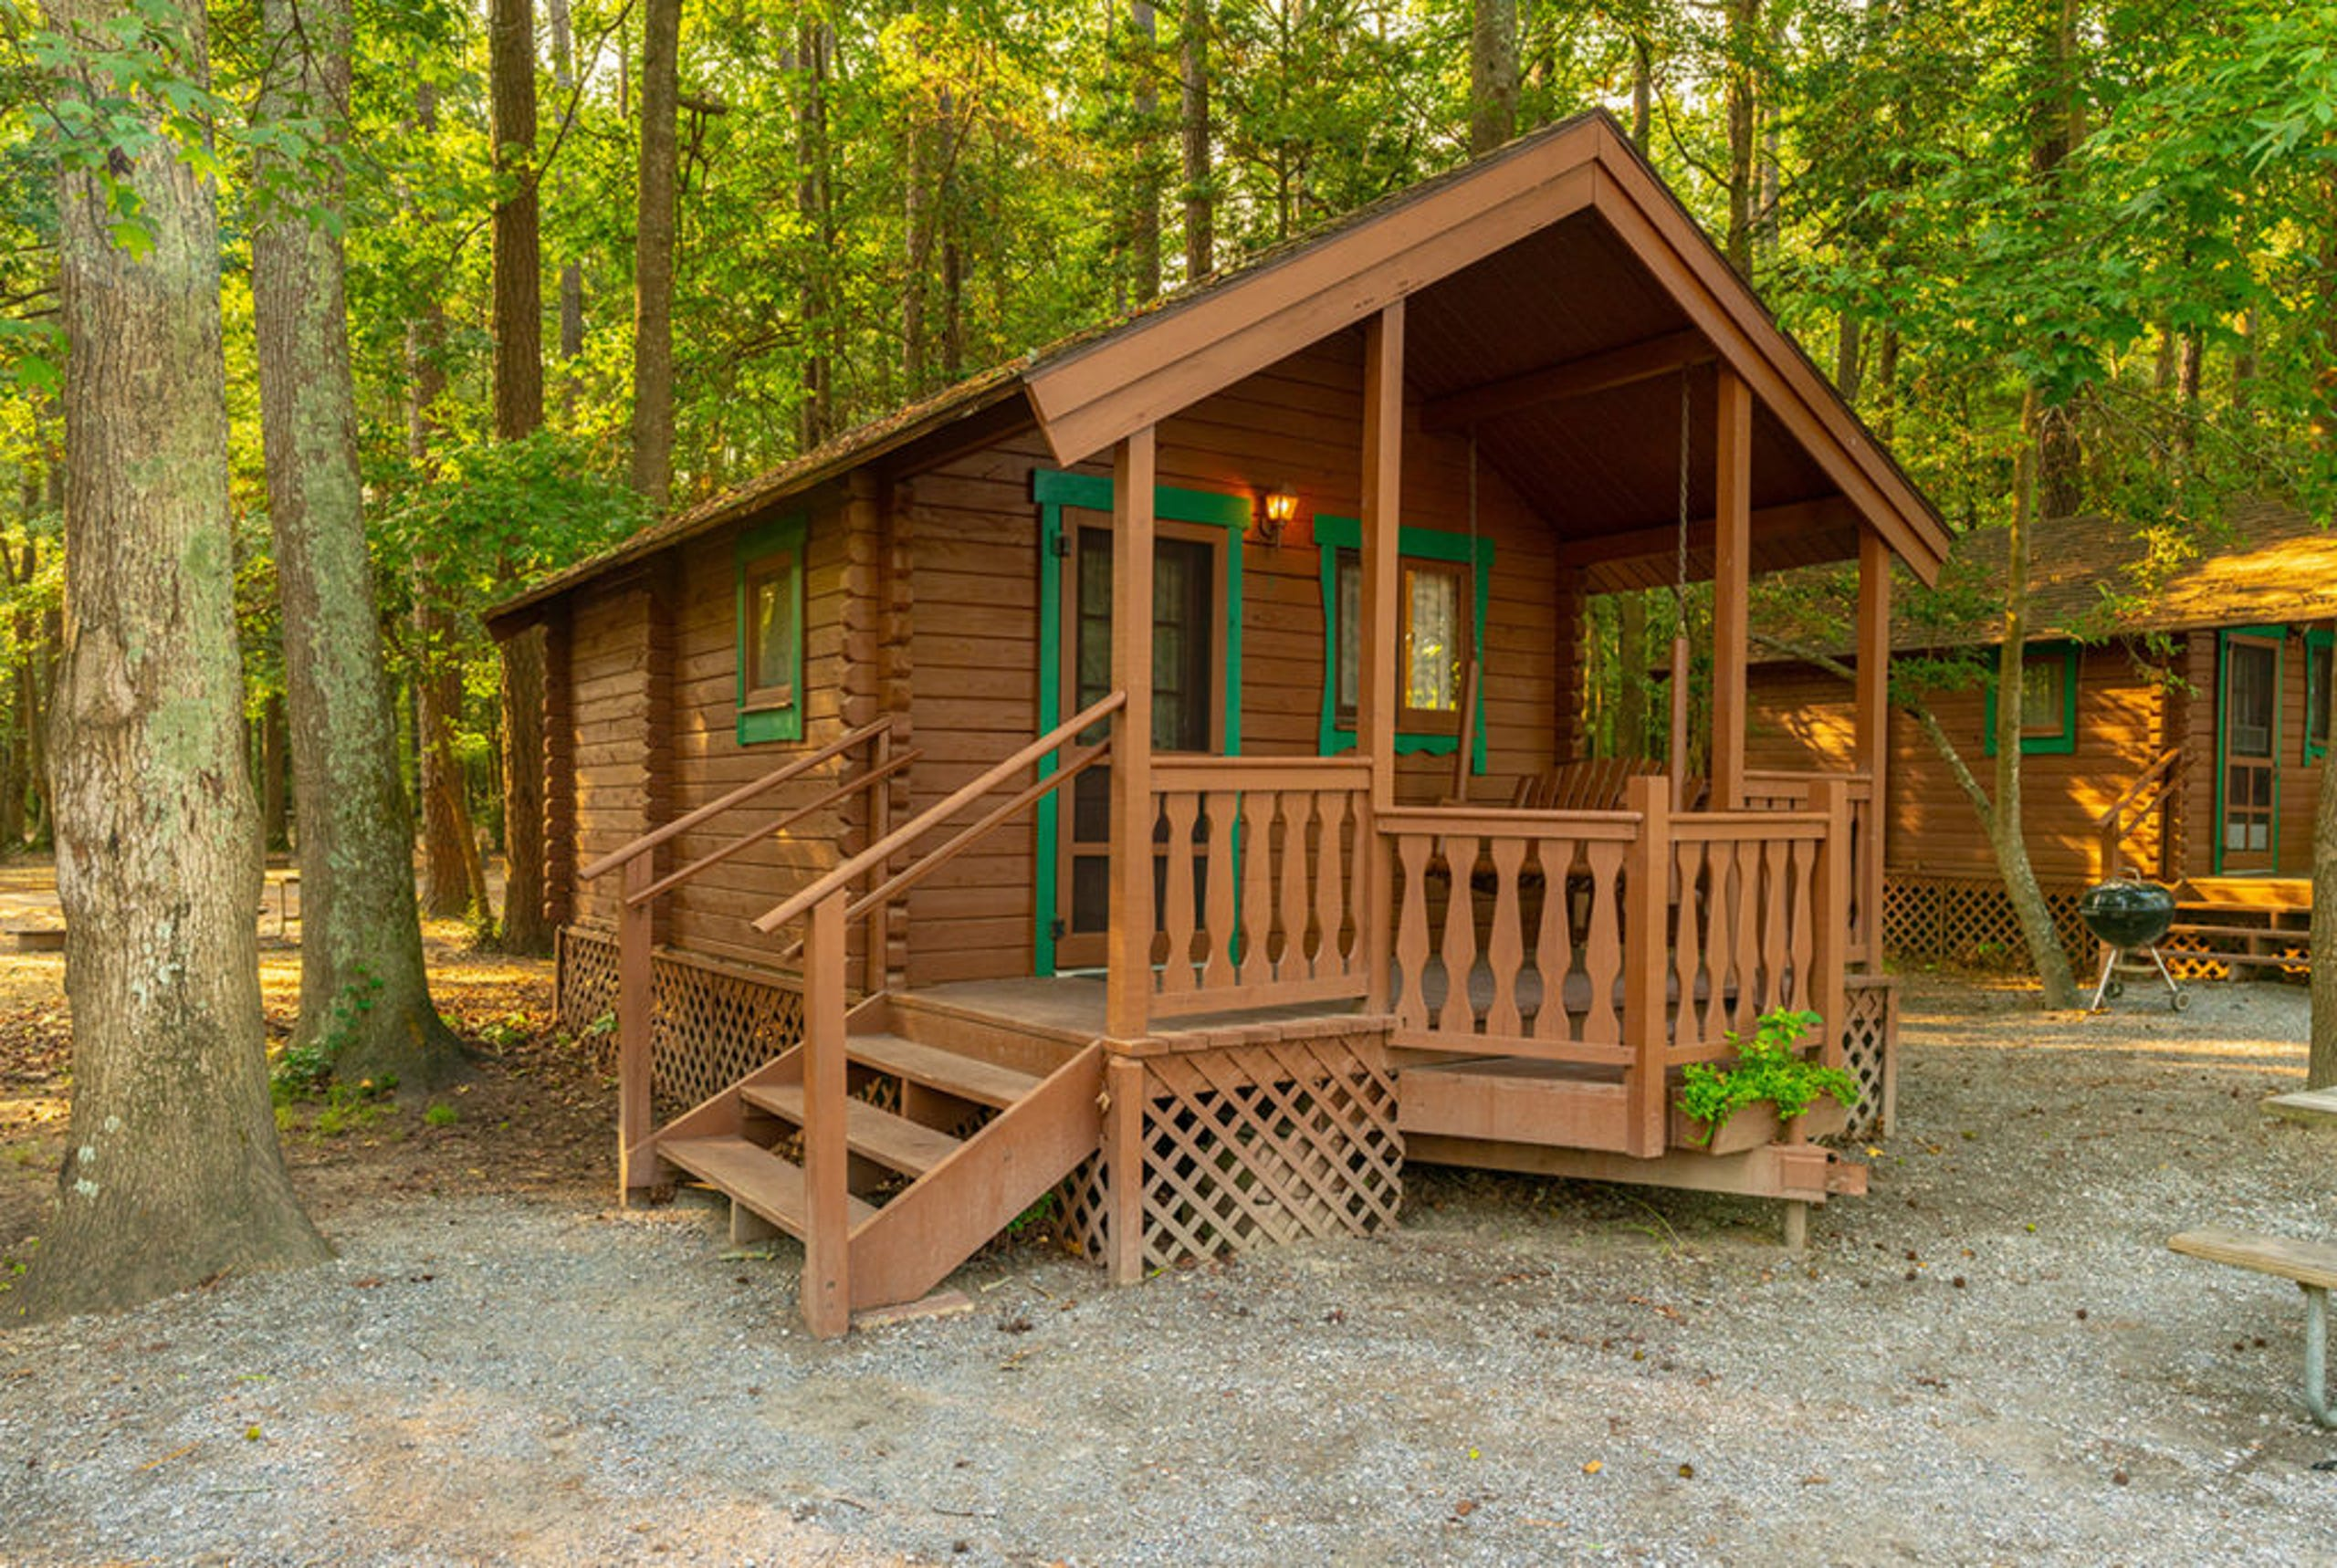 <strong>1.&nbsp;Frontier Town RV Resort &amp; Campground&nbsp;(Berlin, Maryland)</strong><br /> The amenity package at this Maryland RV park includes the Frontier Town Water Park, Miniature Golf, Western Theme Park and High Ropes Adventure Park. It has 7,896 advance reservations for 2021.&nbsp;